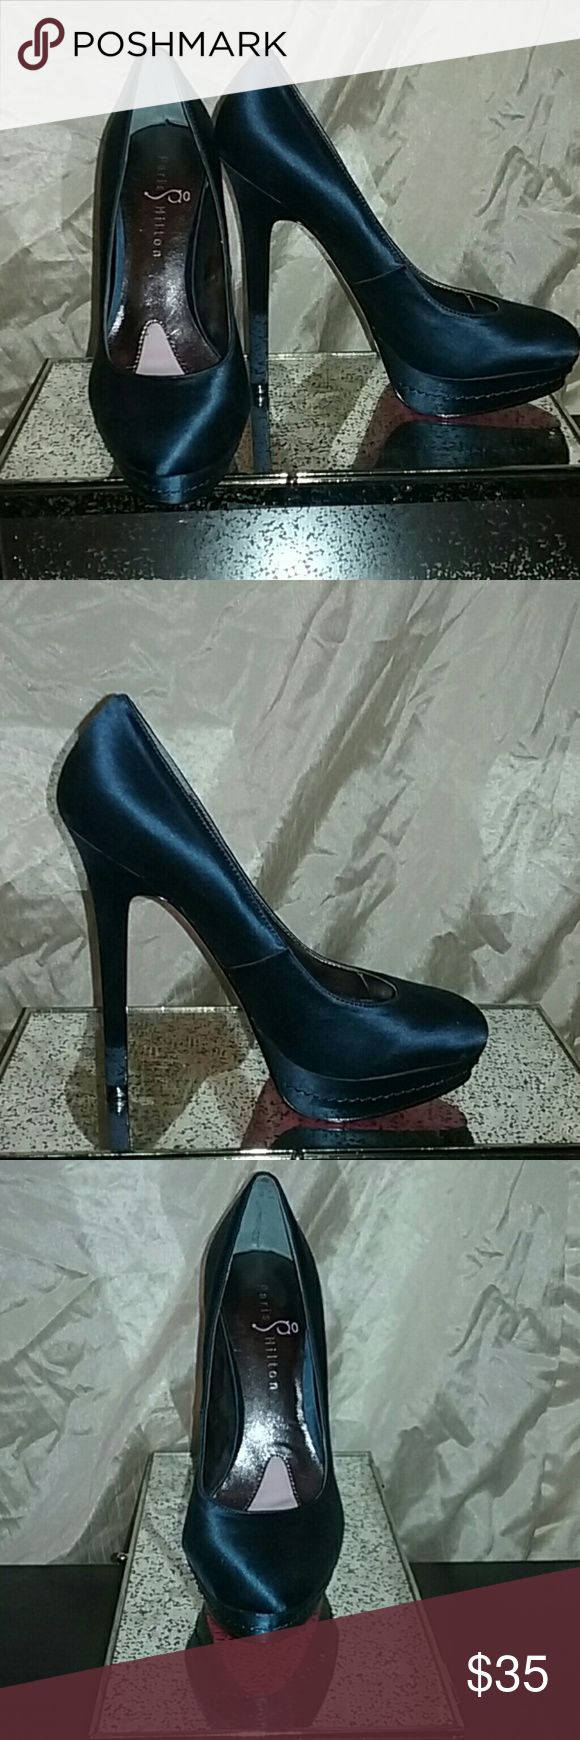 Pairs hilton heels Never been worn (only tried them on)  Paris Hilton navy Staten heels.Size 7 basically brand-new. Paris Hilton Shoes Heels